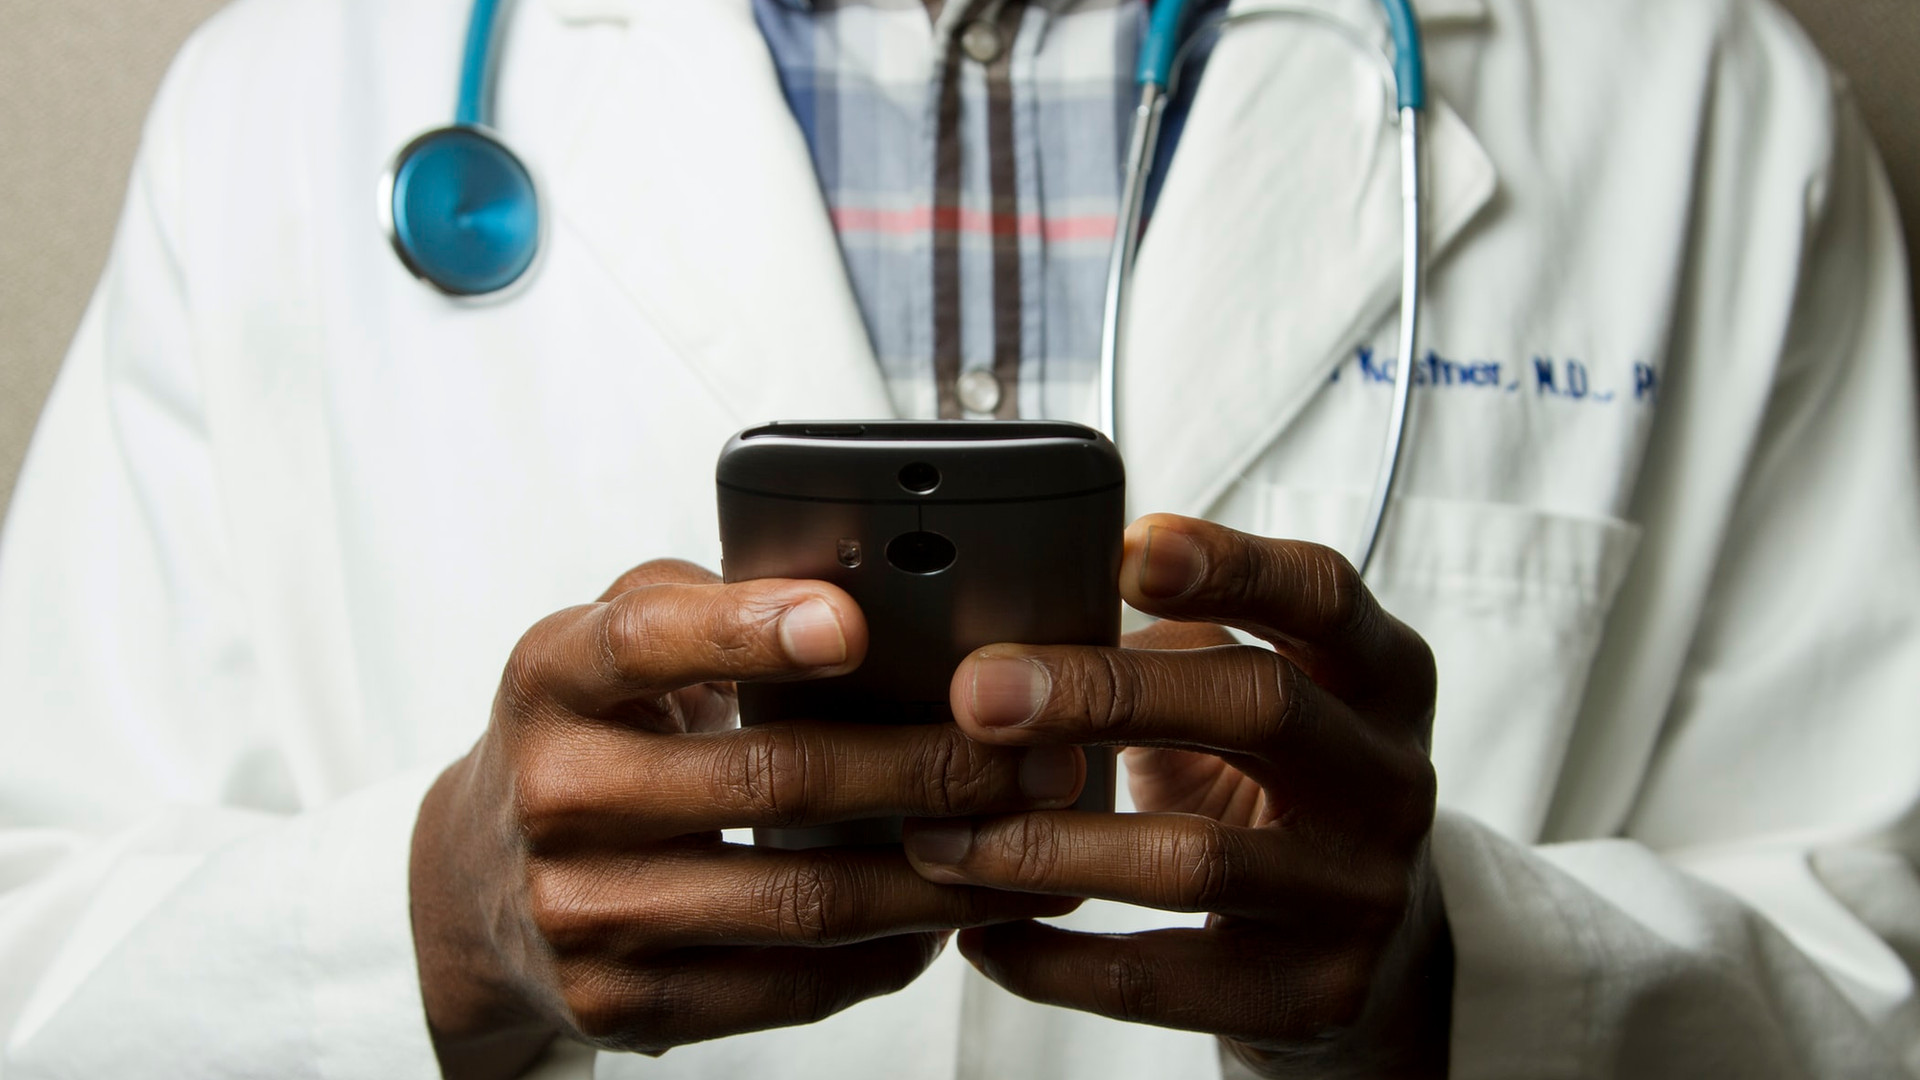 black health professional with phone.jpg